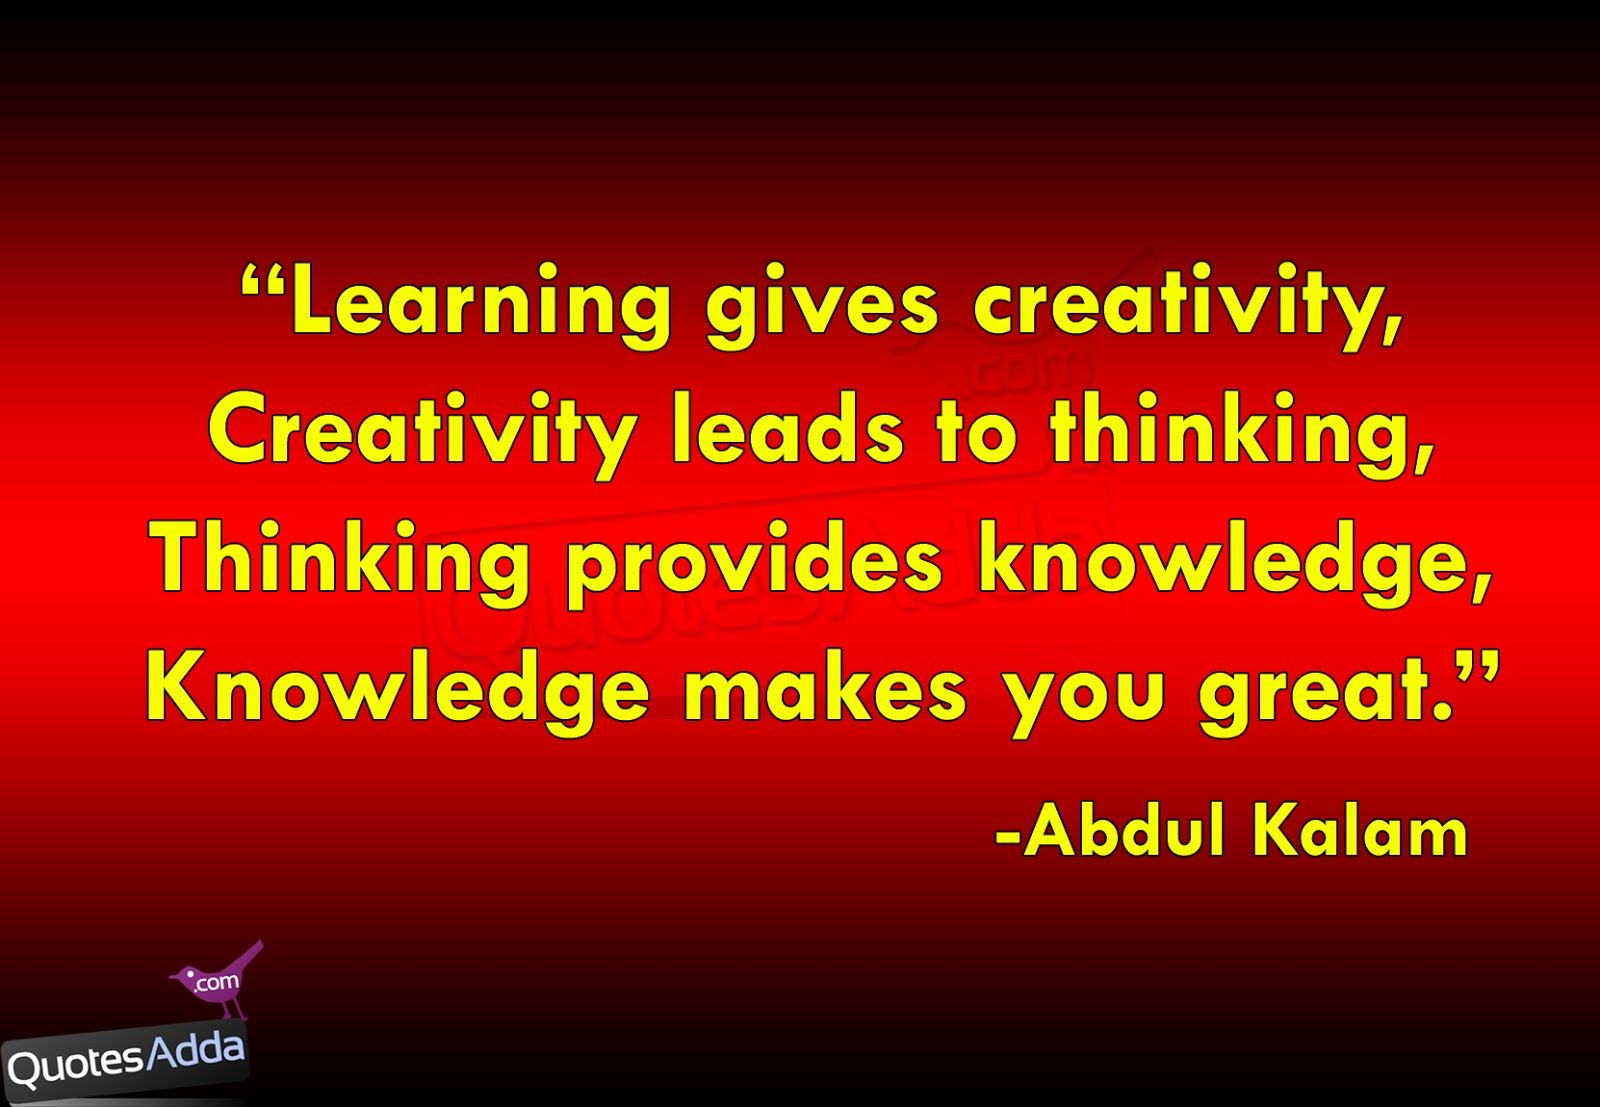 Abdul Kalam Quotations 1 QuotesAdda